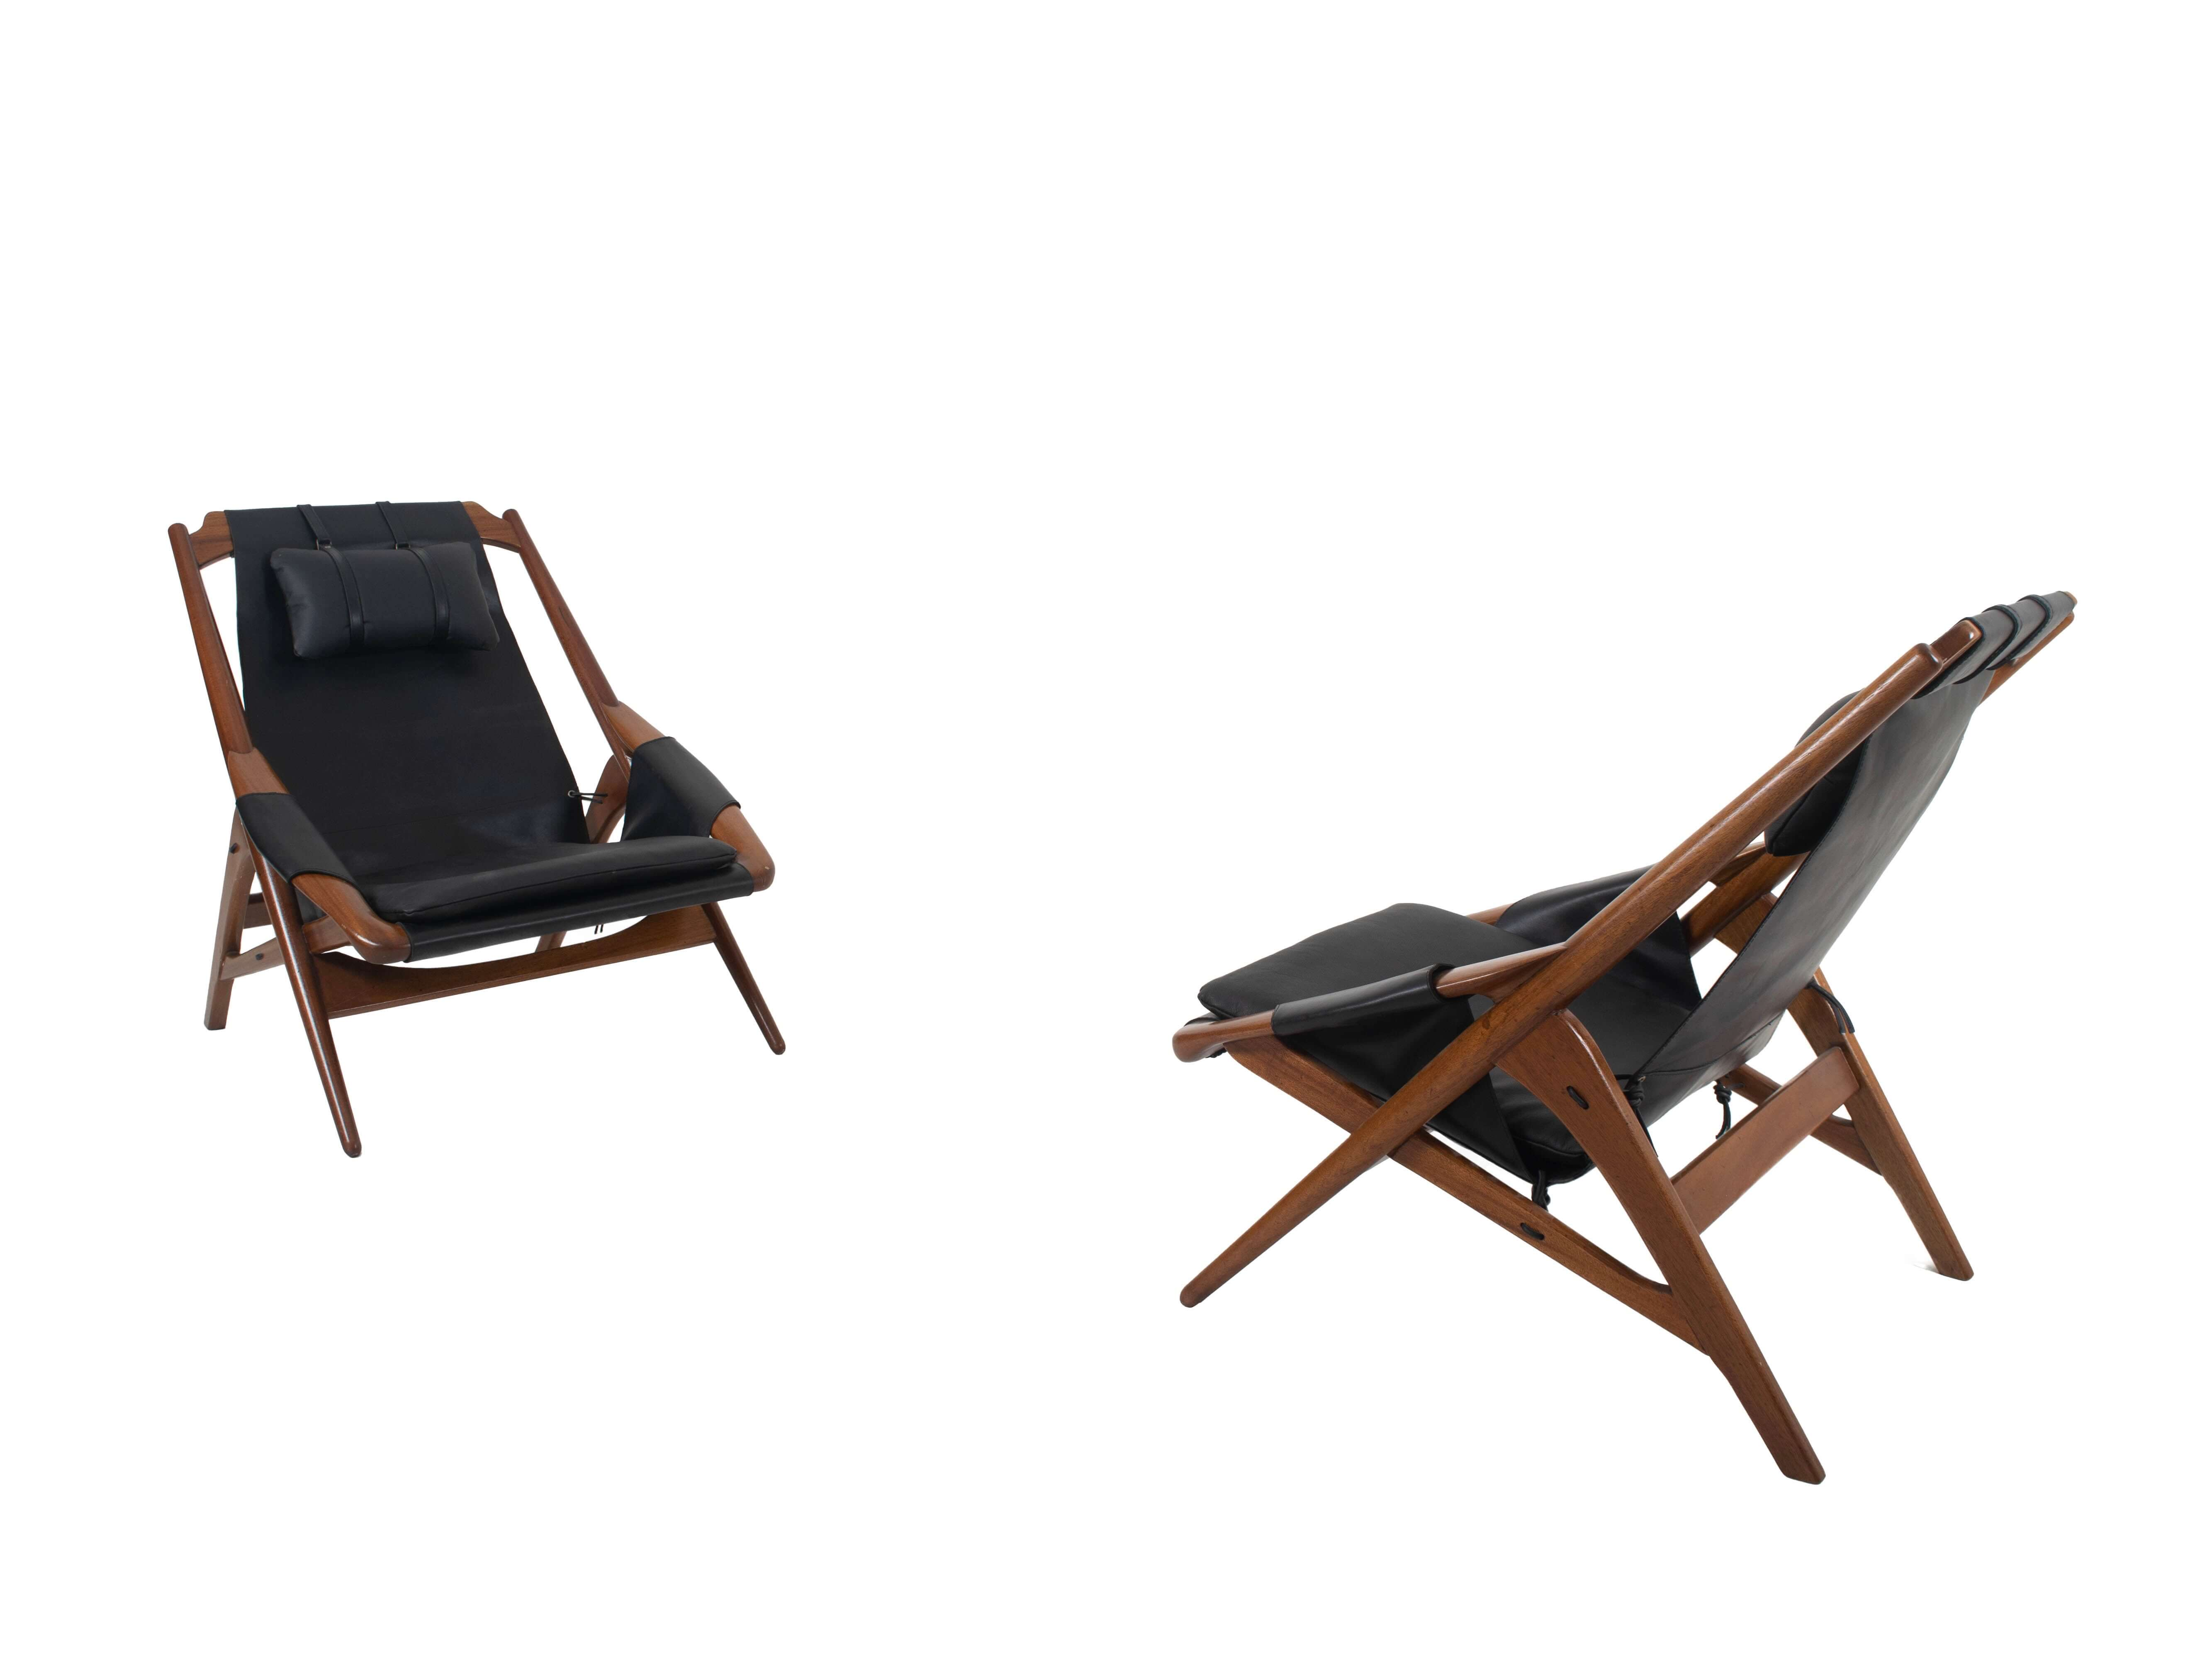 Pair of Leather Lounge Chairs by W.D. Andersag, Italy 1960s